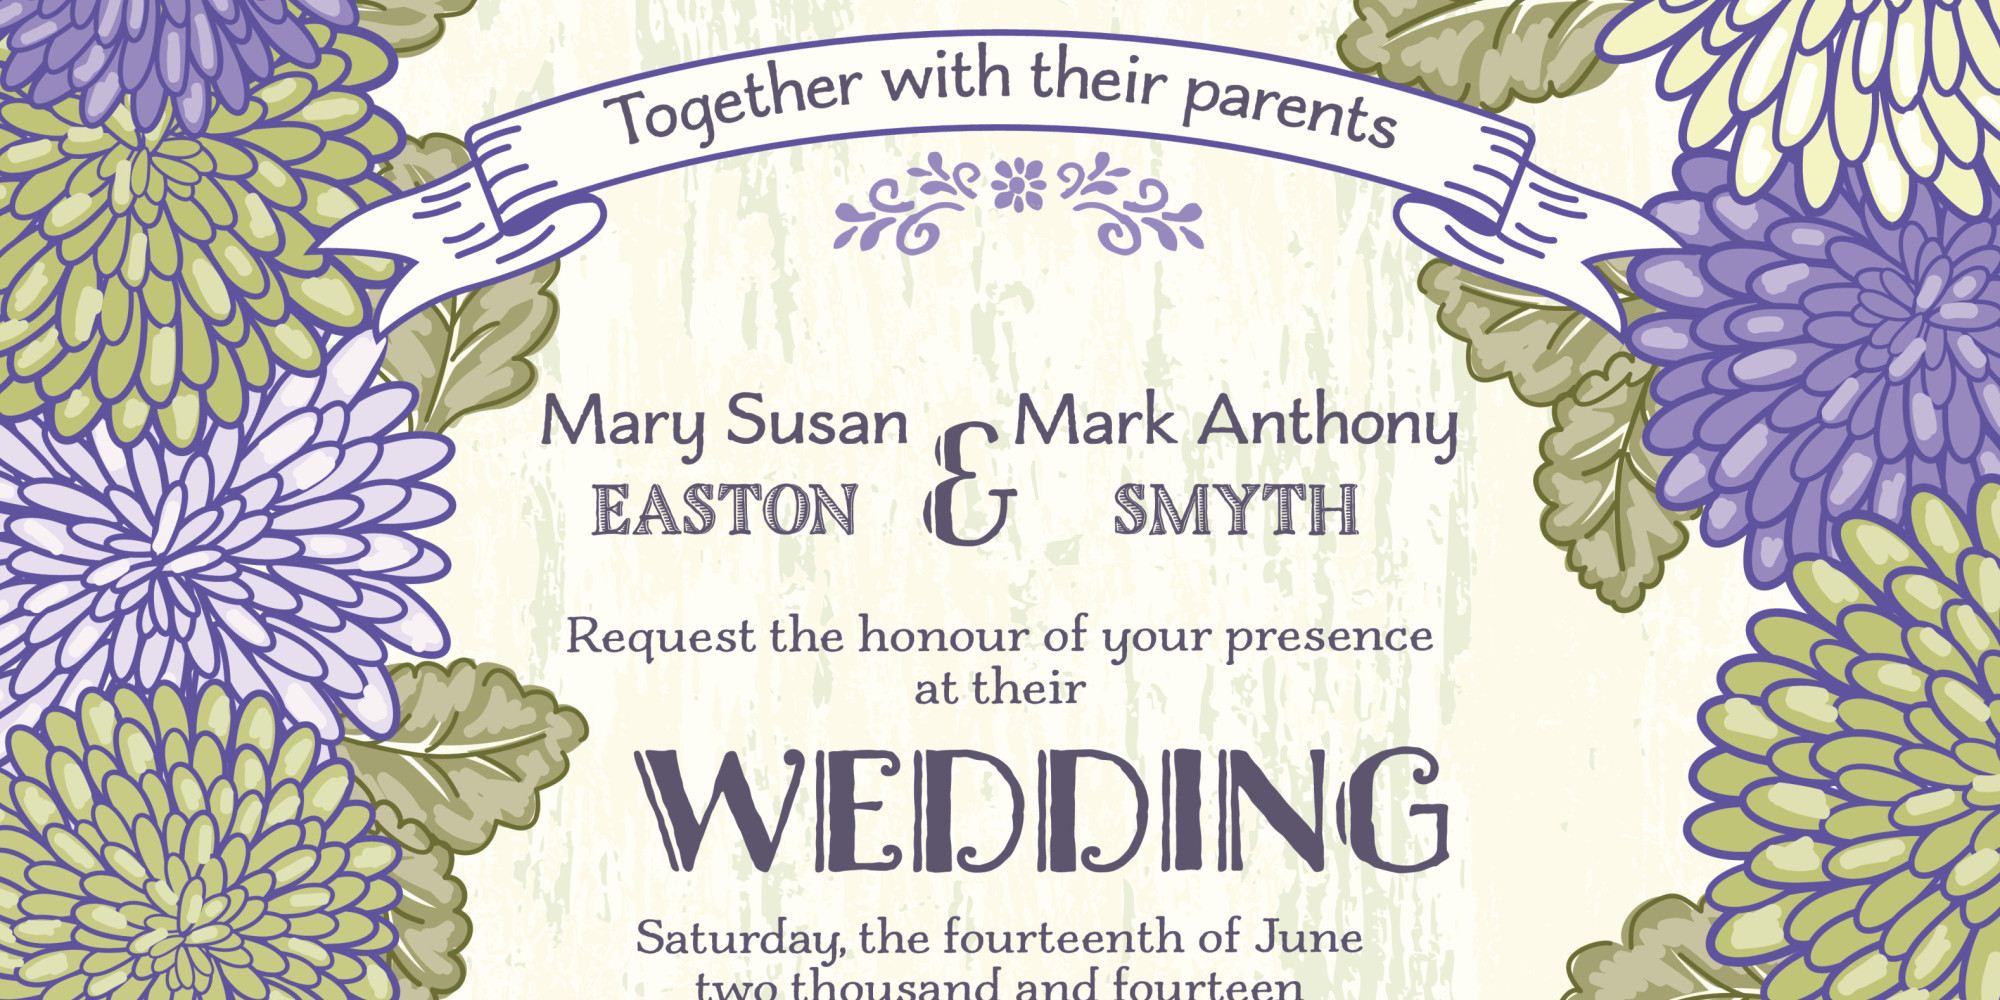 How To Write Invitation For Wedding: Why You Should Never Include Wedding Registry Info With